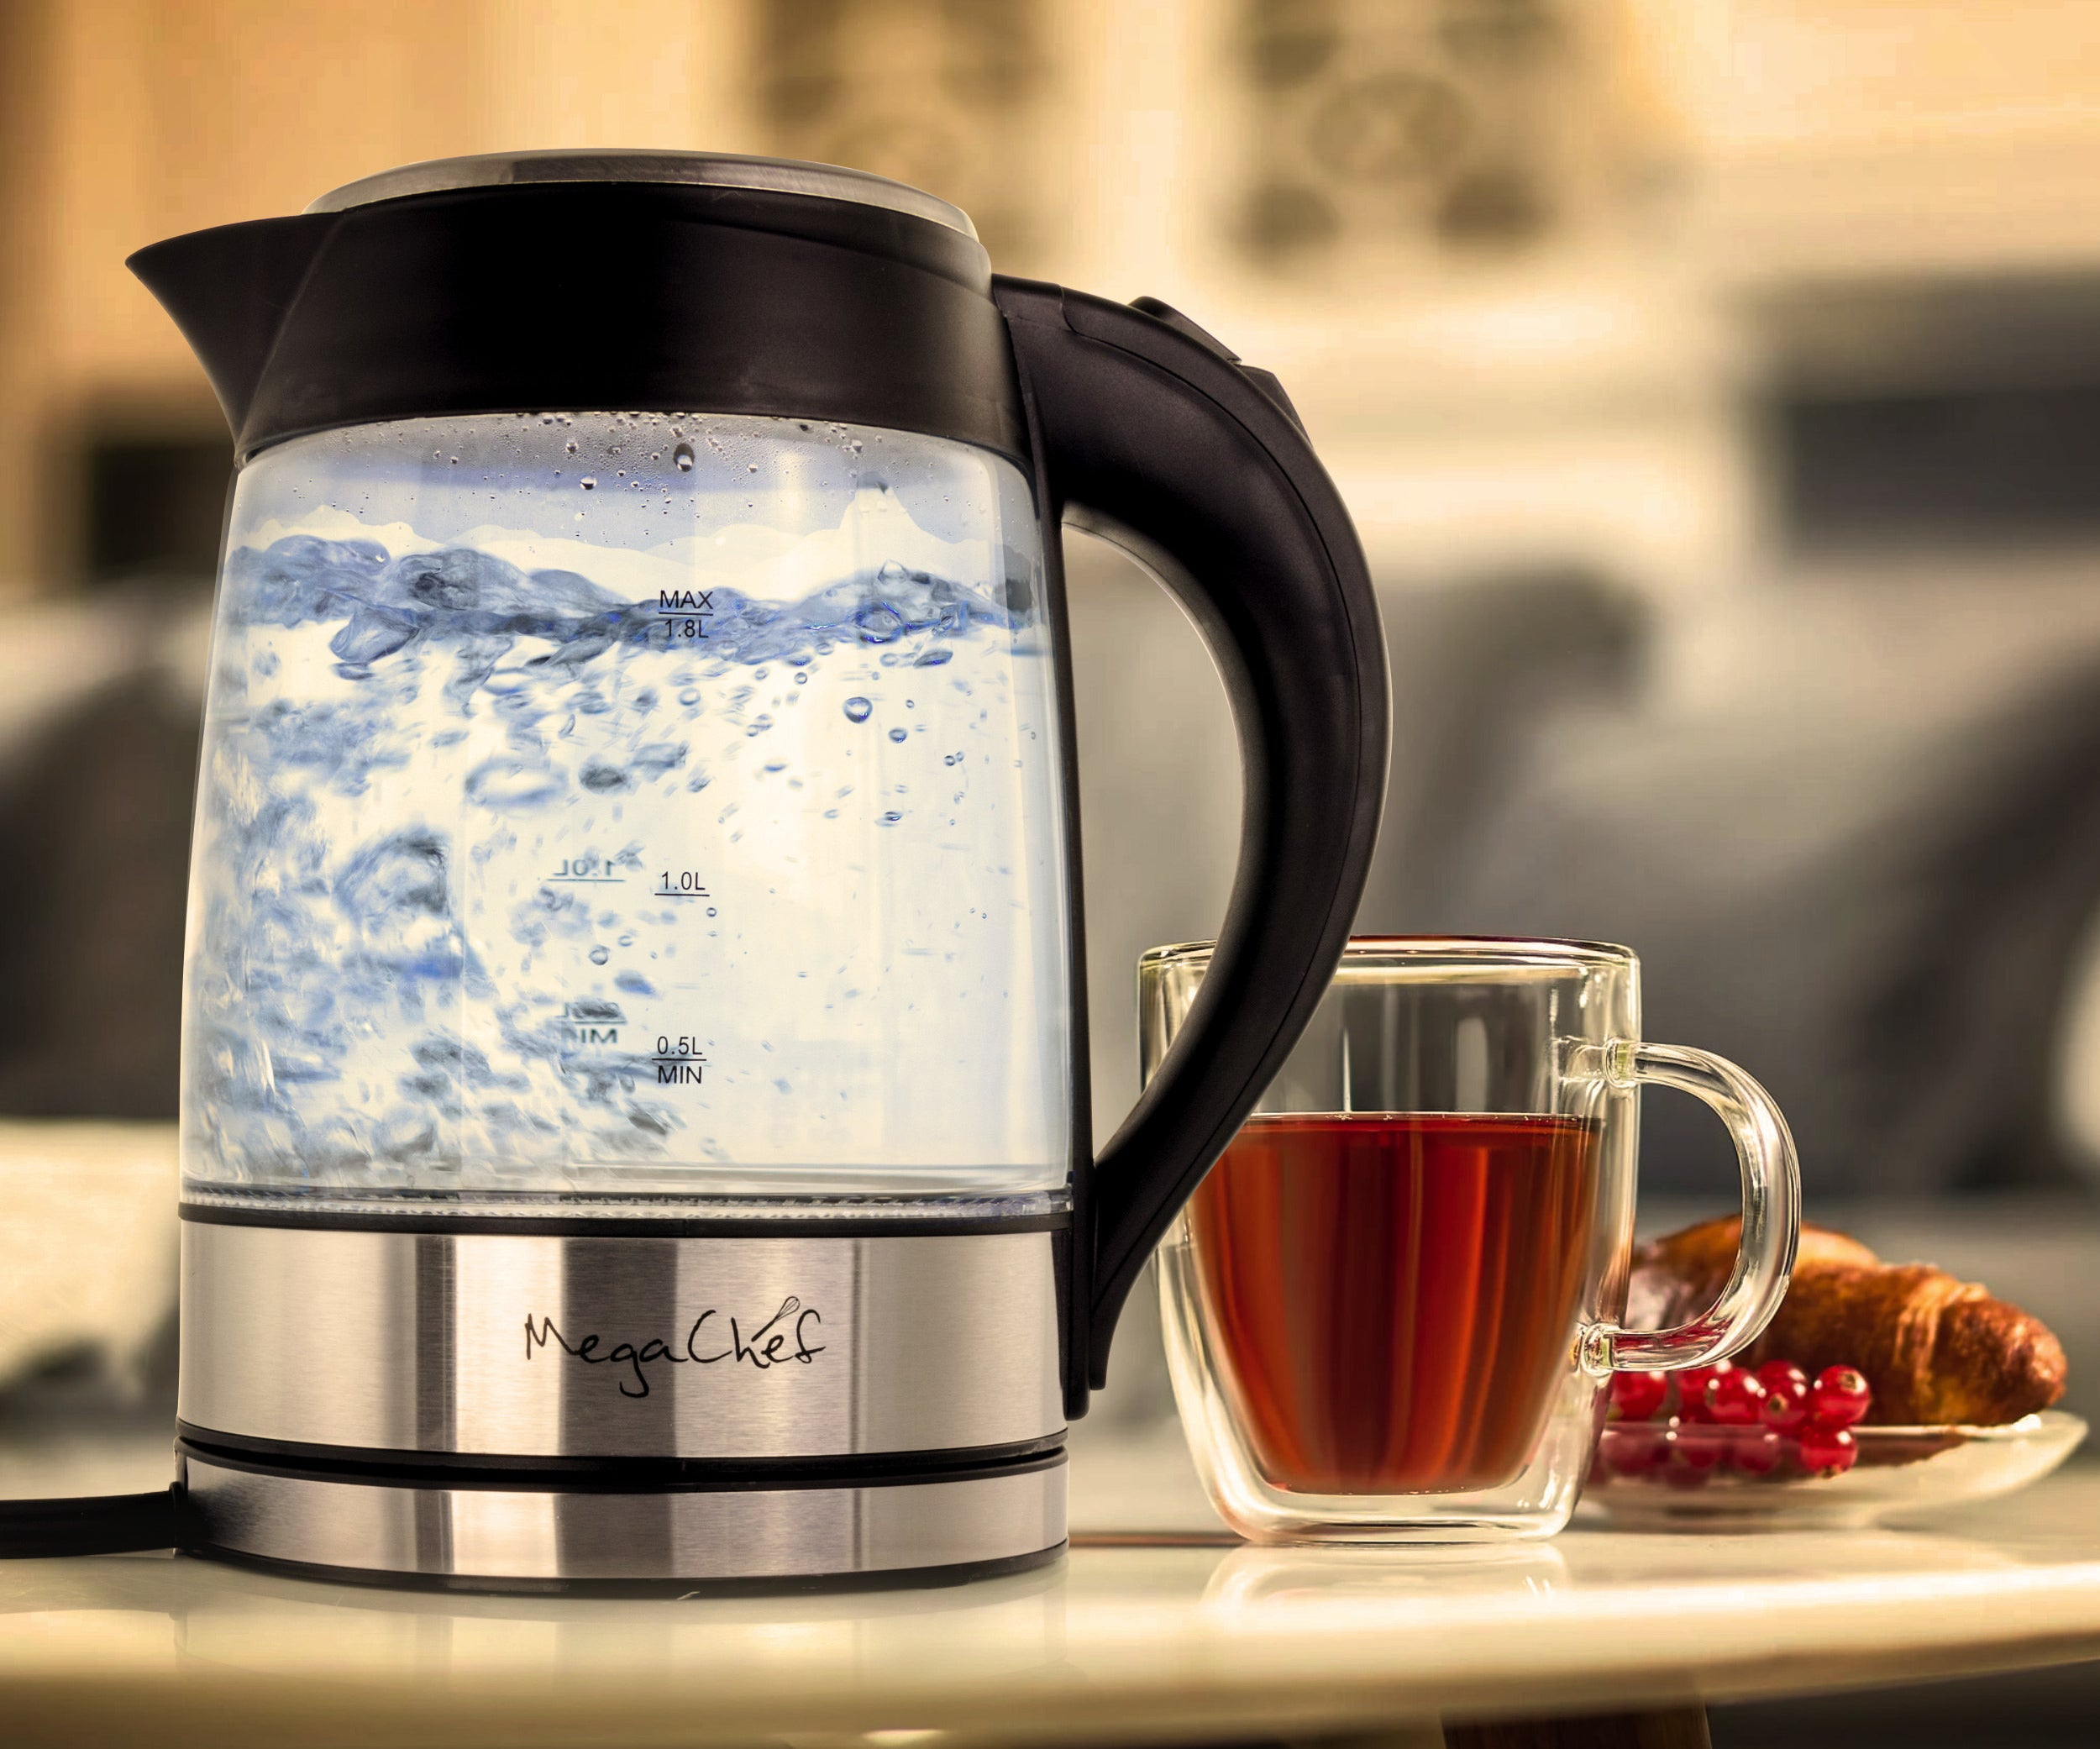 The electric tea kettle